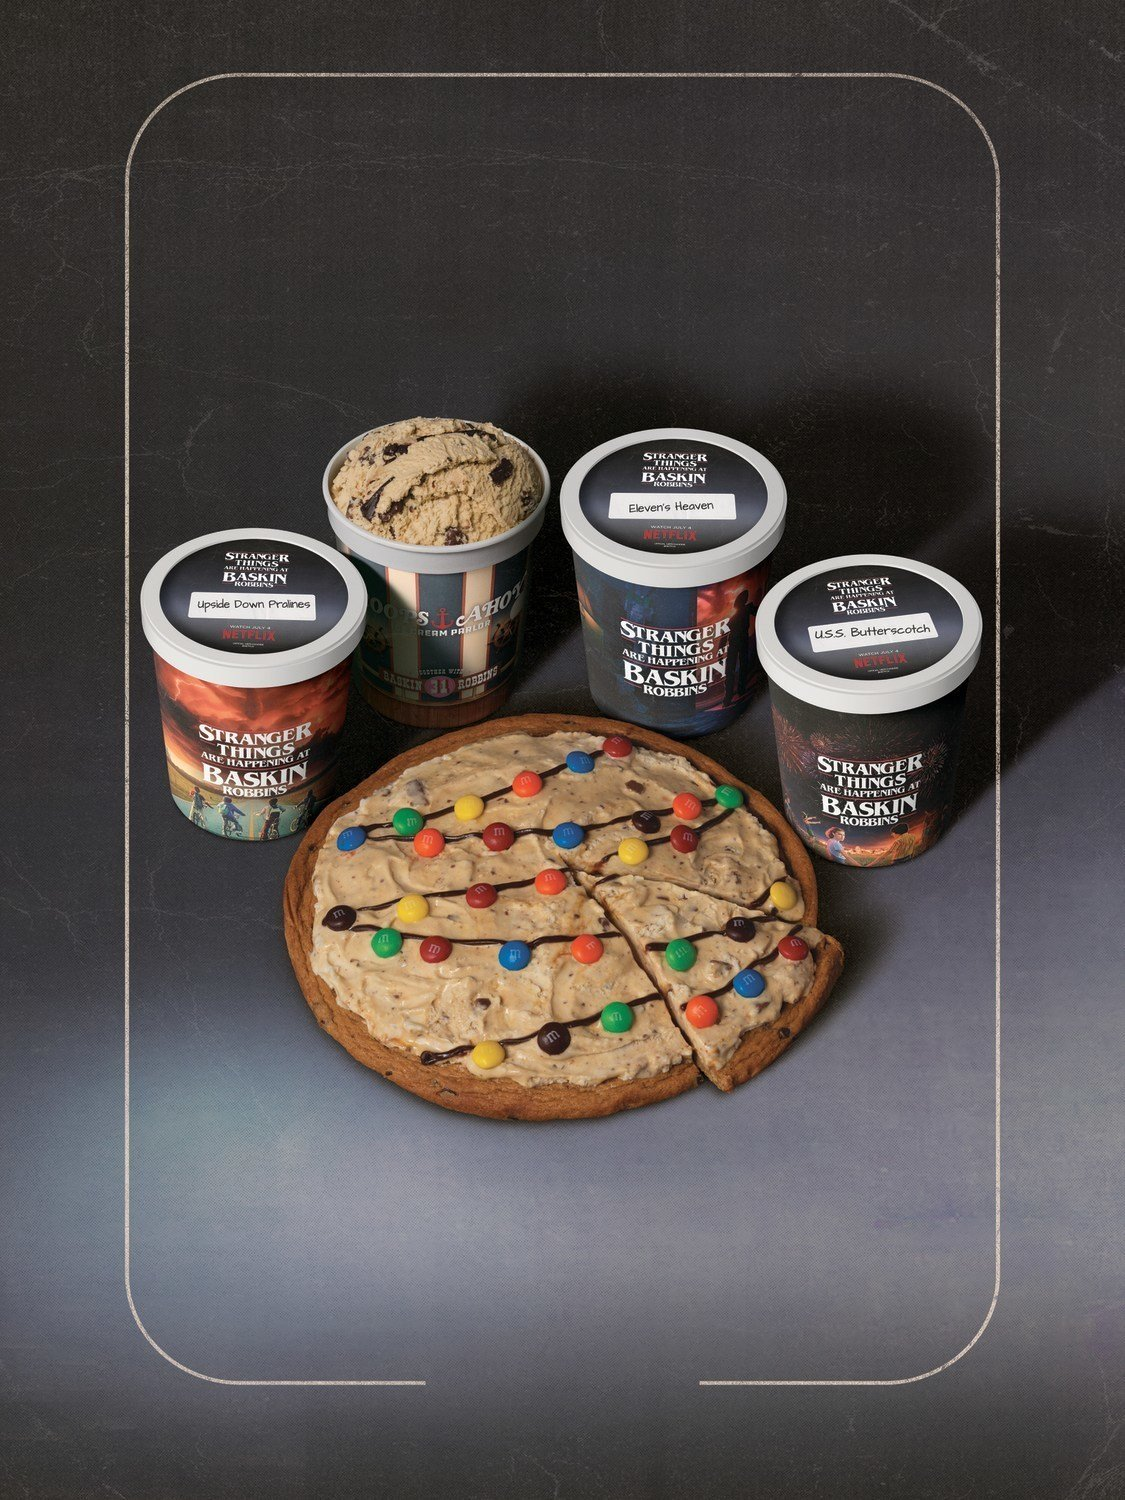 Byers' House Lights Polar Pizza Ice Cream Treat